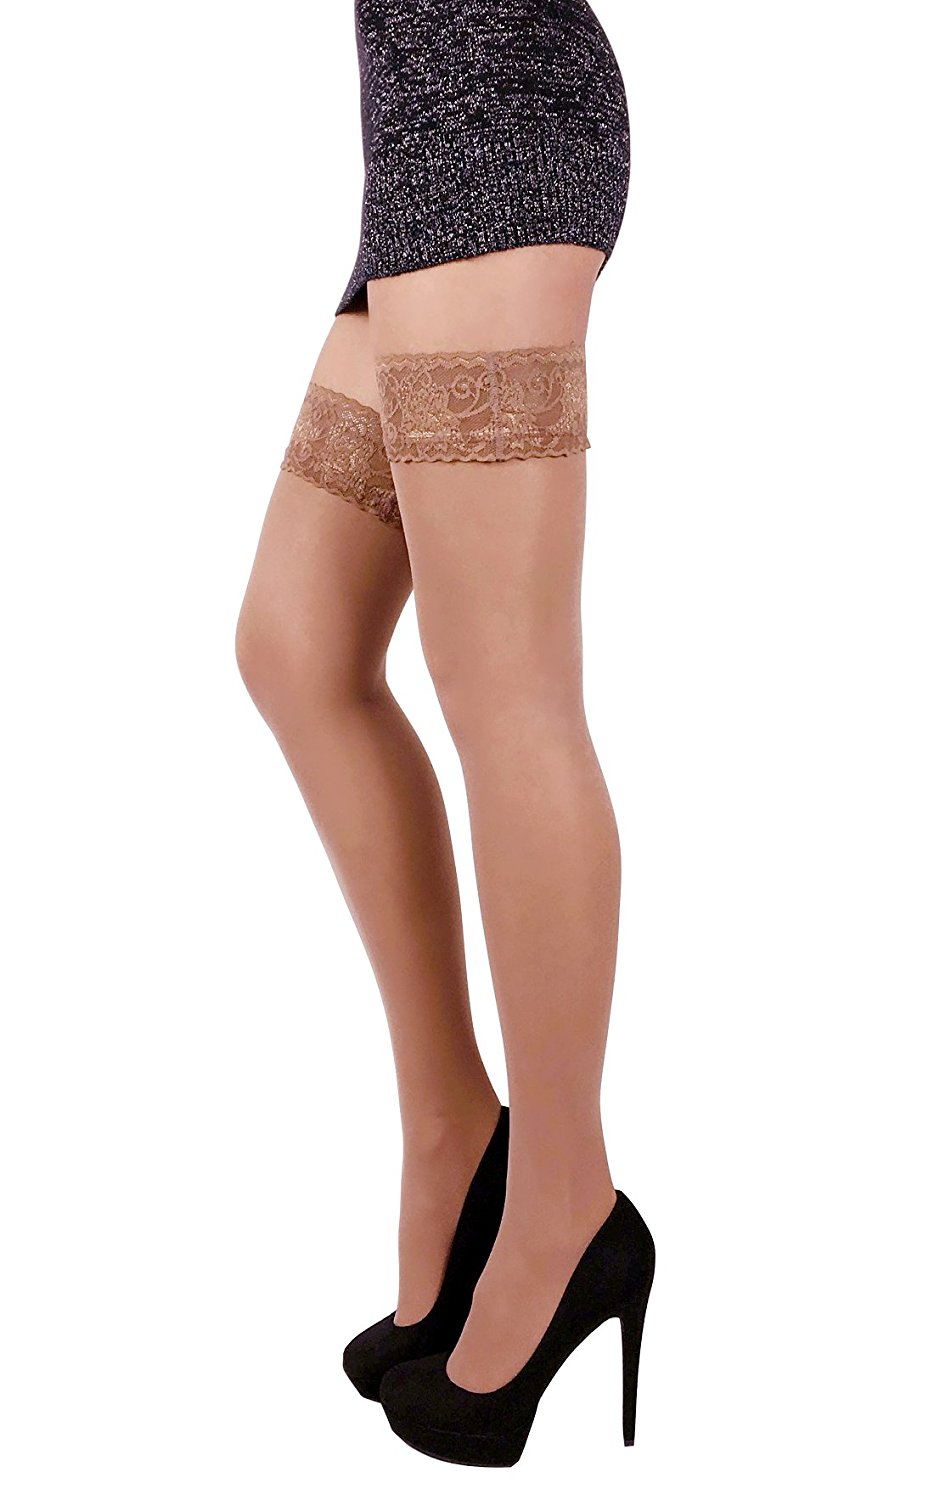 bab3d006dad Get Quotations · THIGH HIGH Sheer Lace Top Silicone Stockings Nylon Hosiery  20 Den S - XL